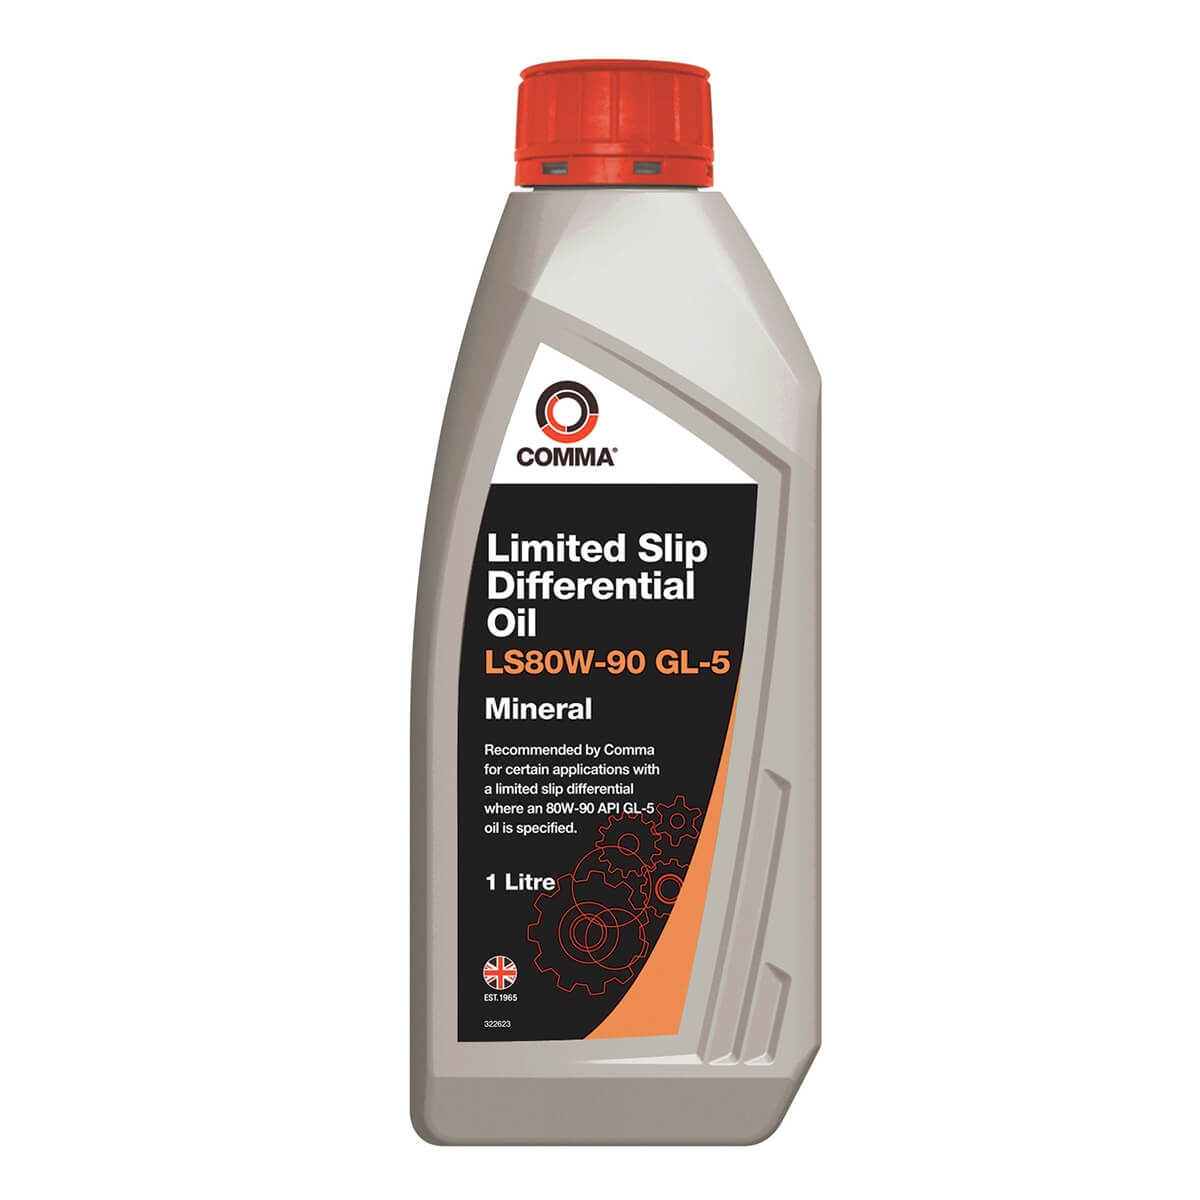 HYUNDAI GRAND SANTA FE Diff Gear Oil